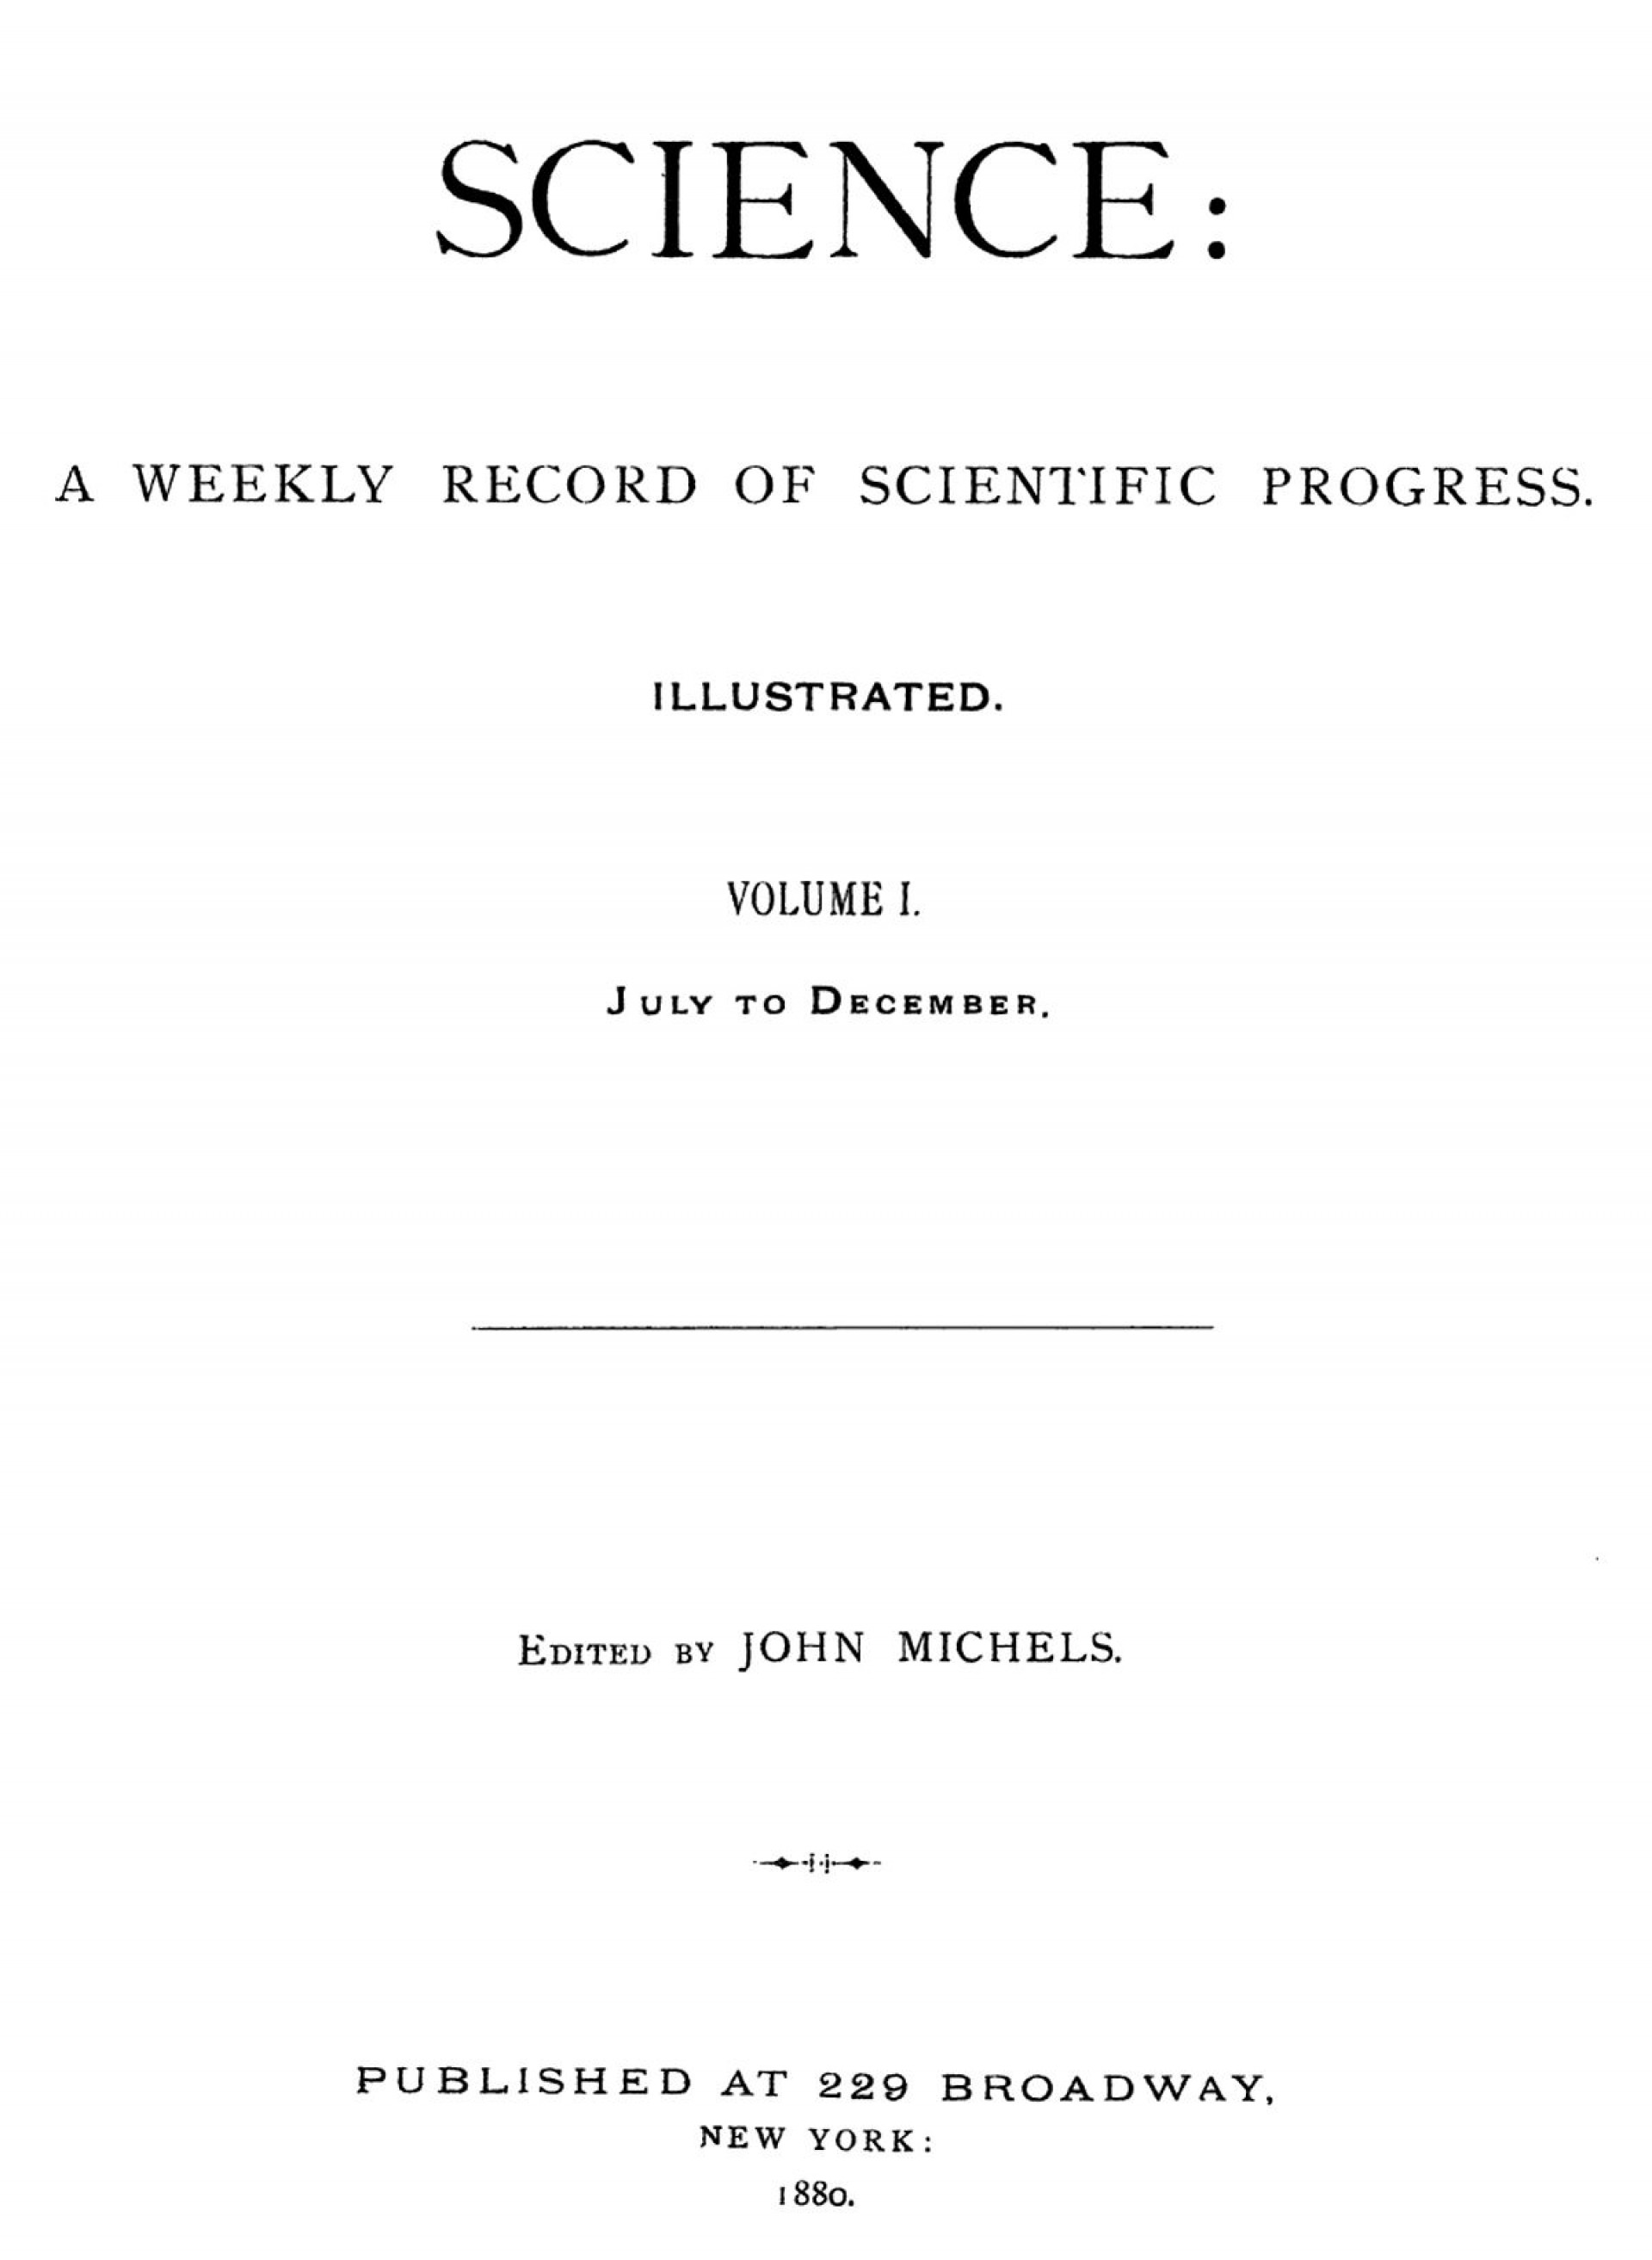 009 Free Science Researchs Online 1200px Vol  1 28188029 Singular Research Papers1920